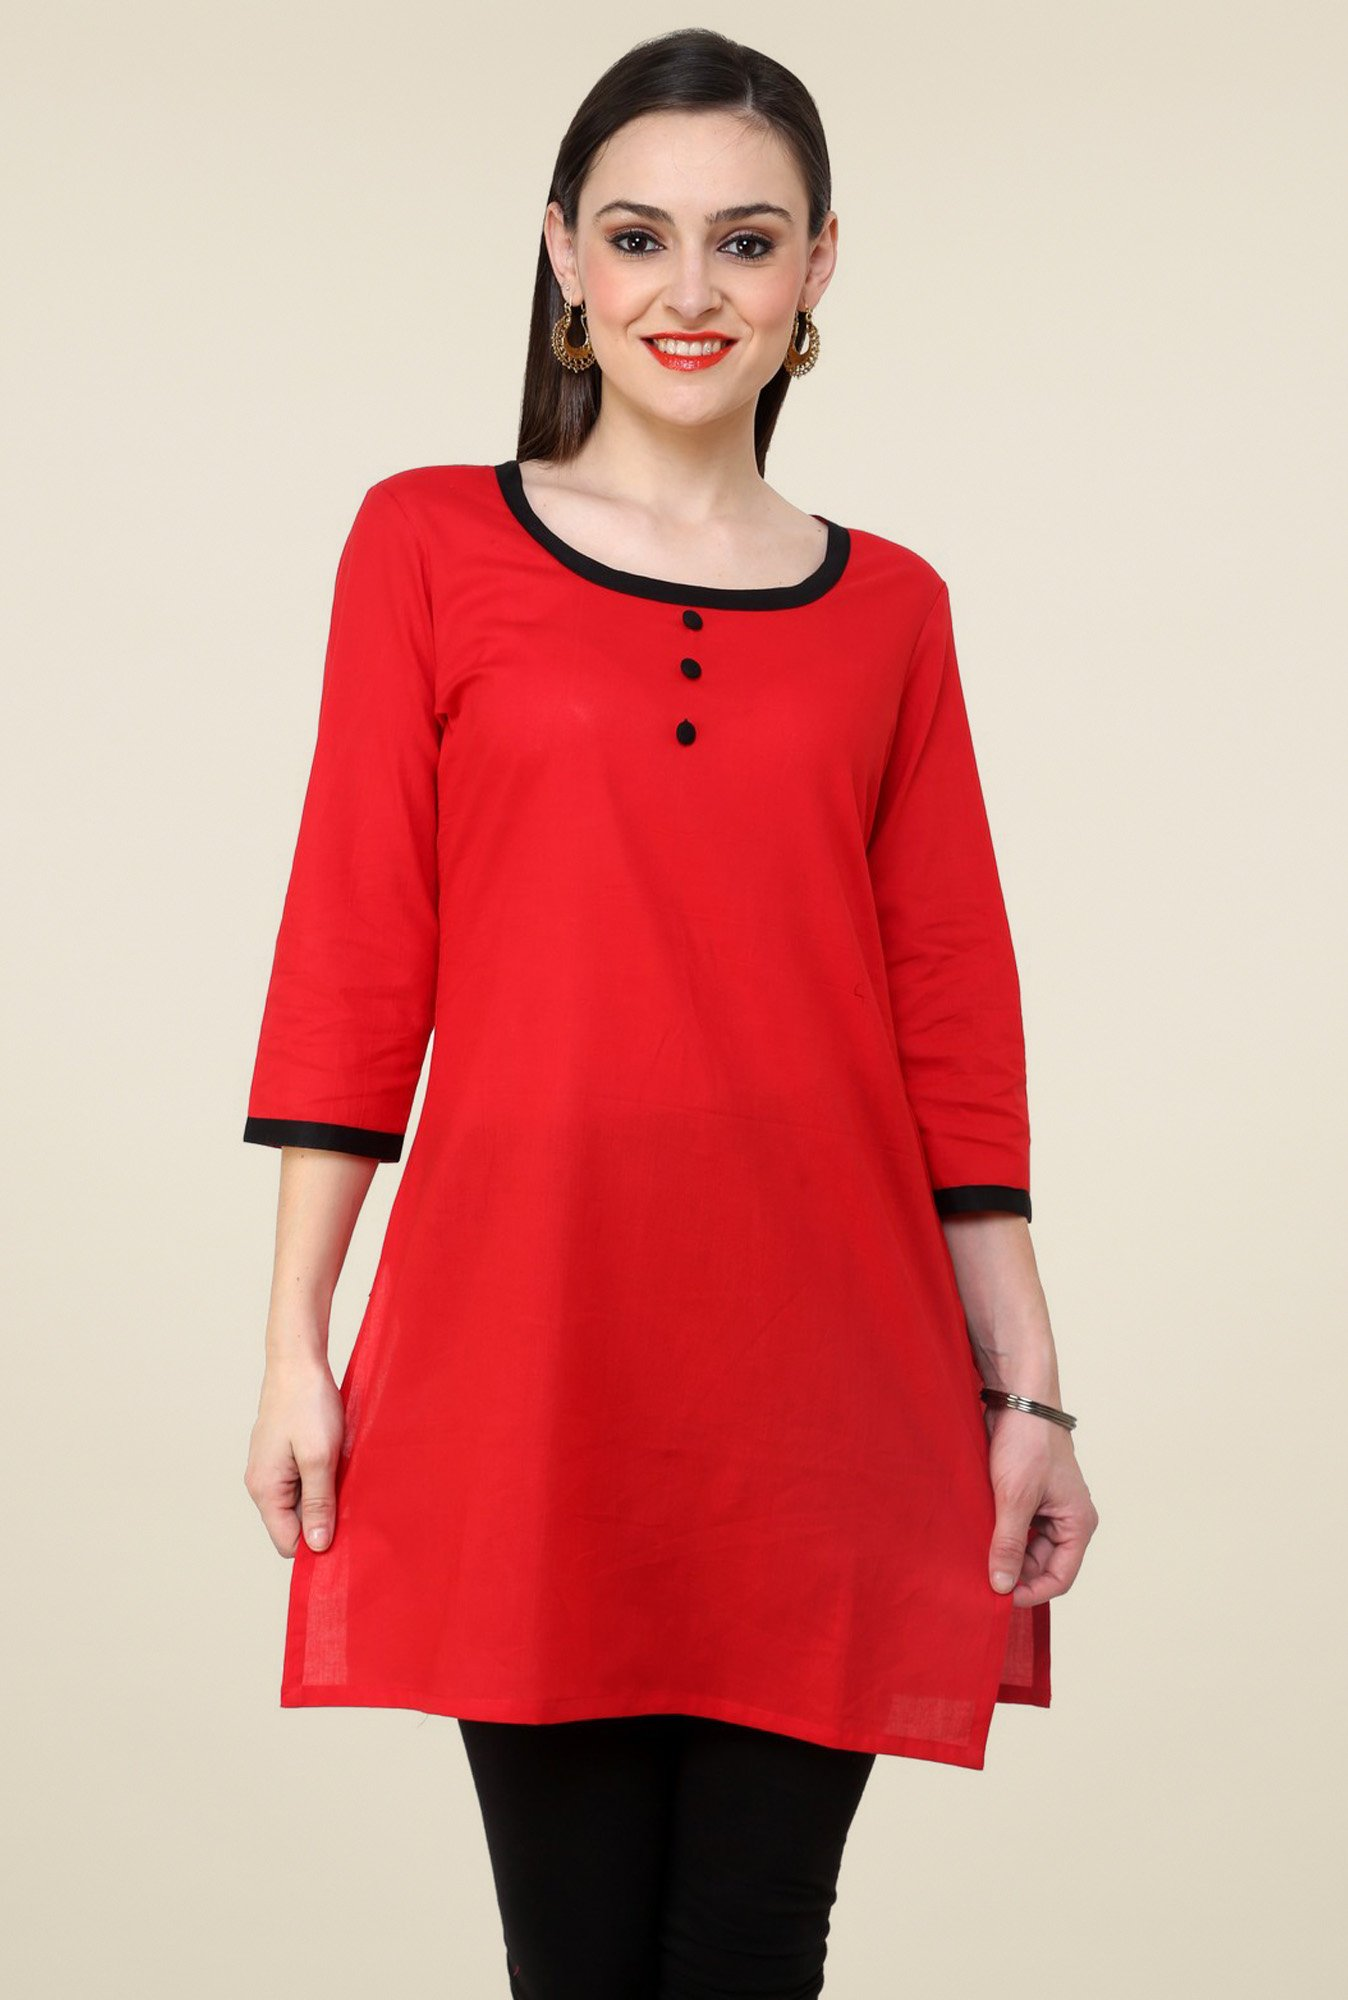 Pannkh Red 3/4th Sleeves Kurti